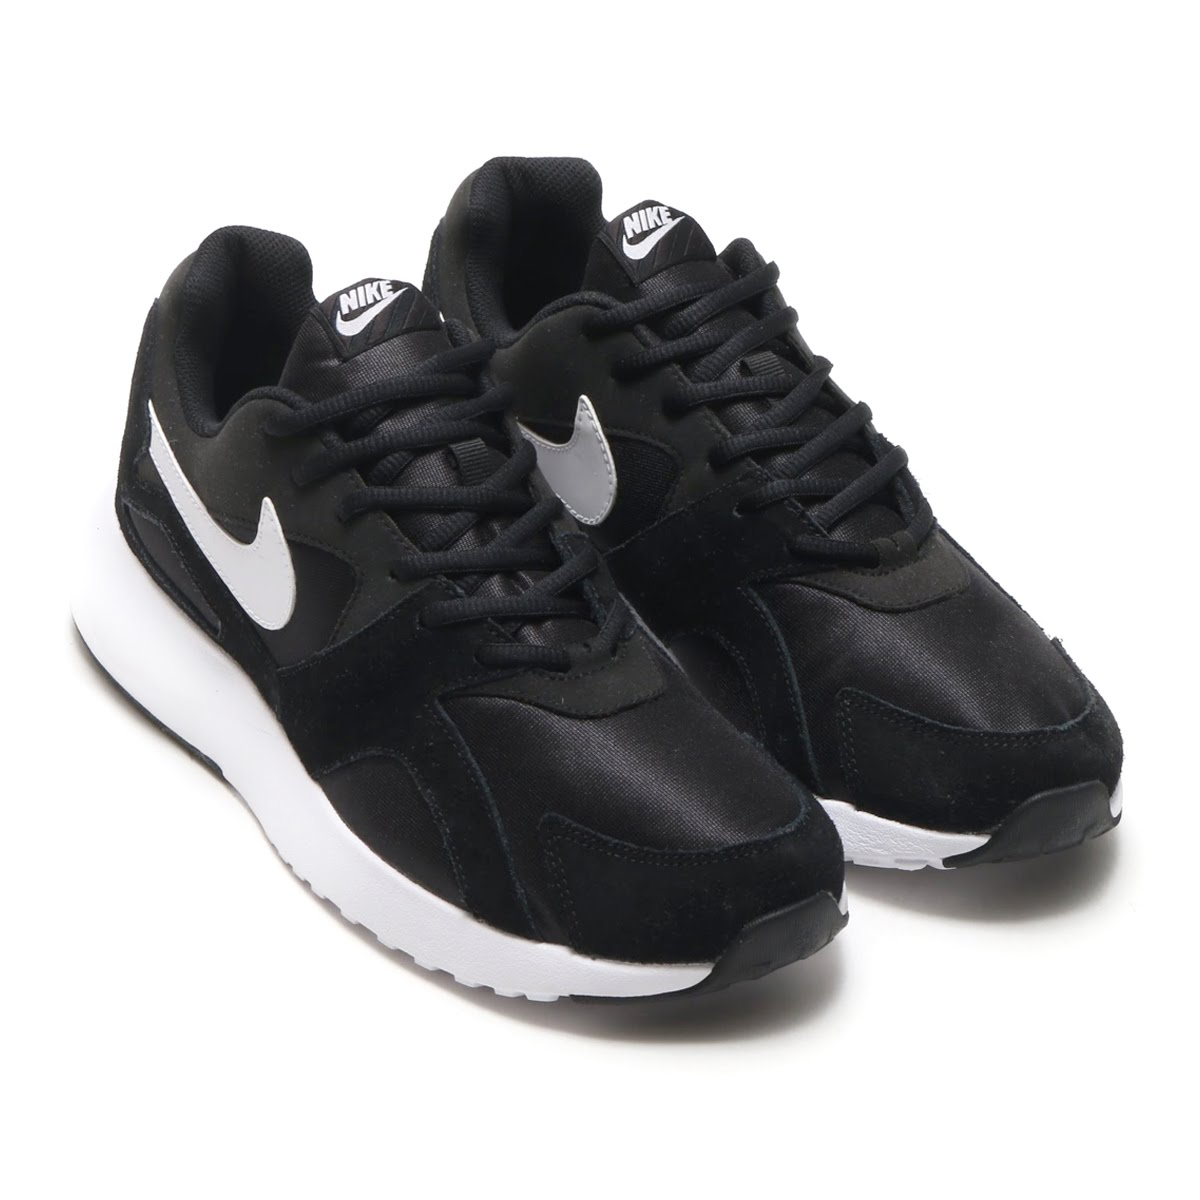 ★SALE ★ NIKE PANTHEOS (Nike Bakery Theo's) BLACK/WHITE 18SP-I